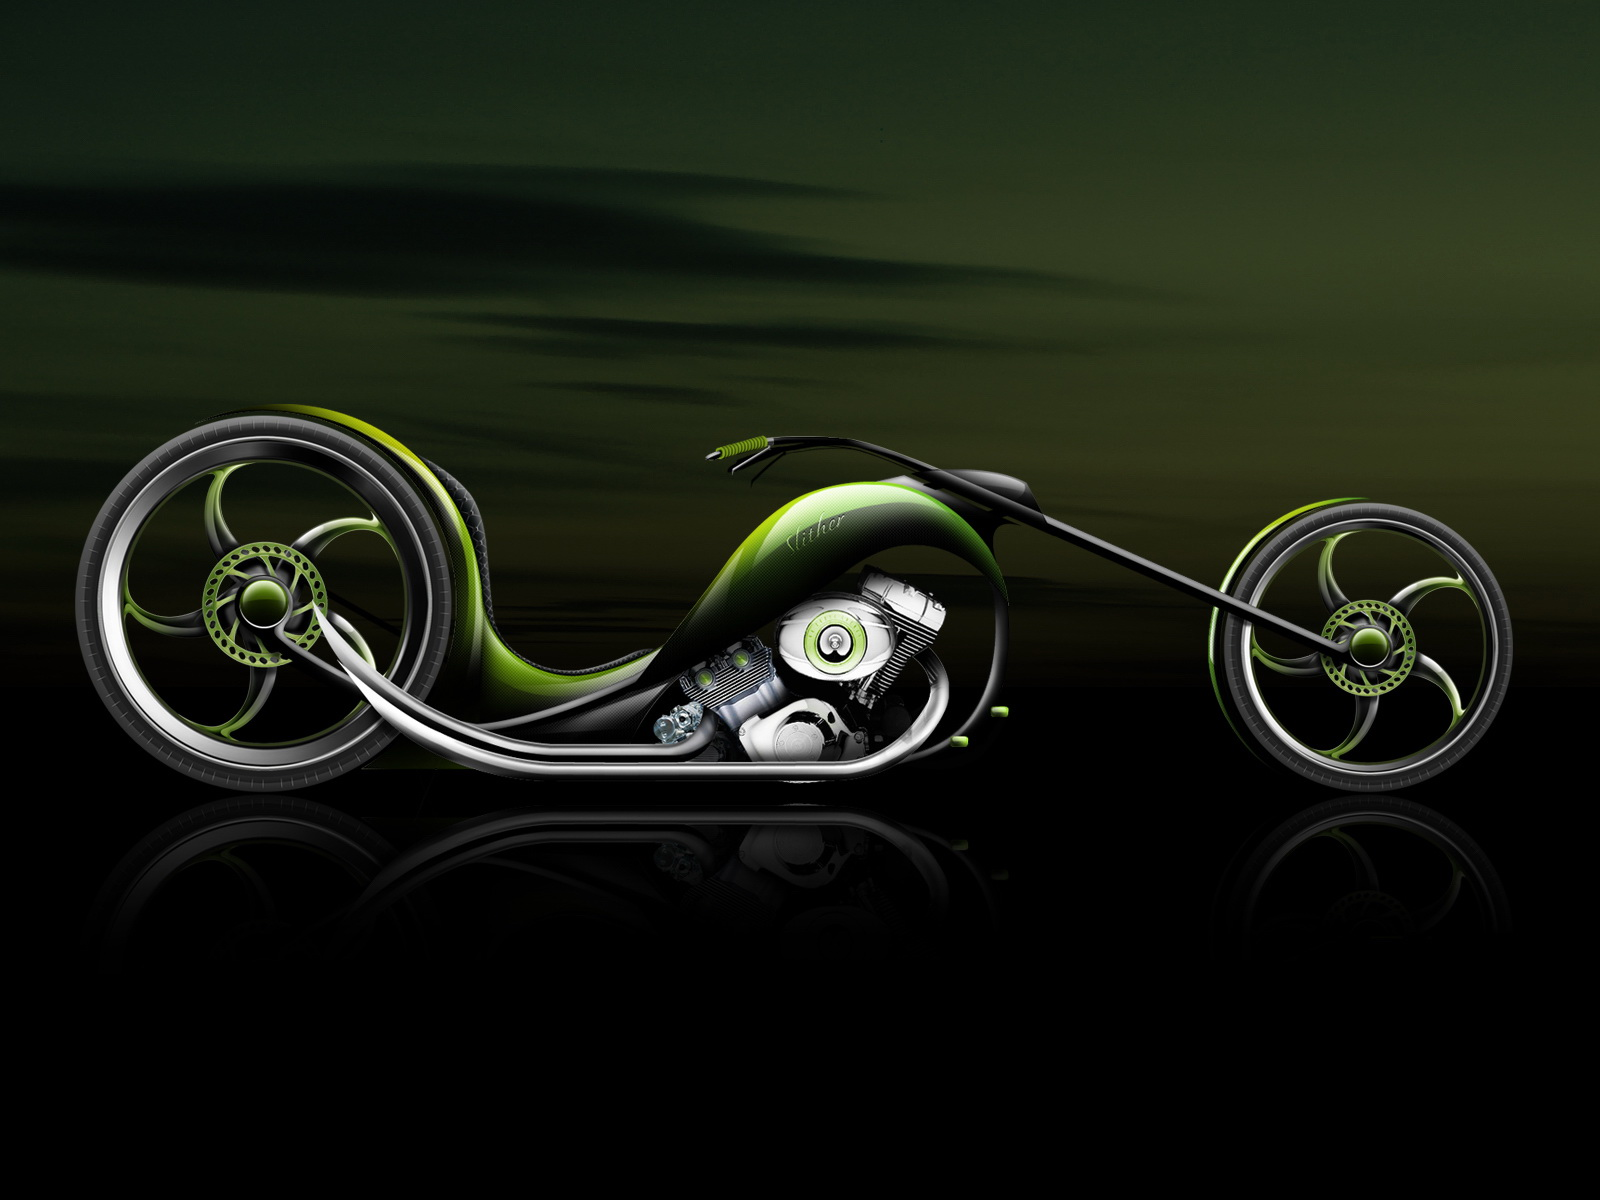 35 HD Bike Wallpapers for Desktop Download 1600x1200